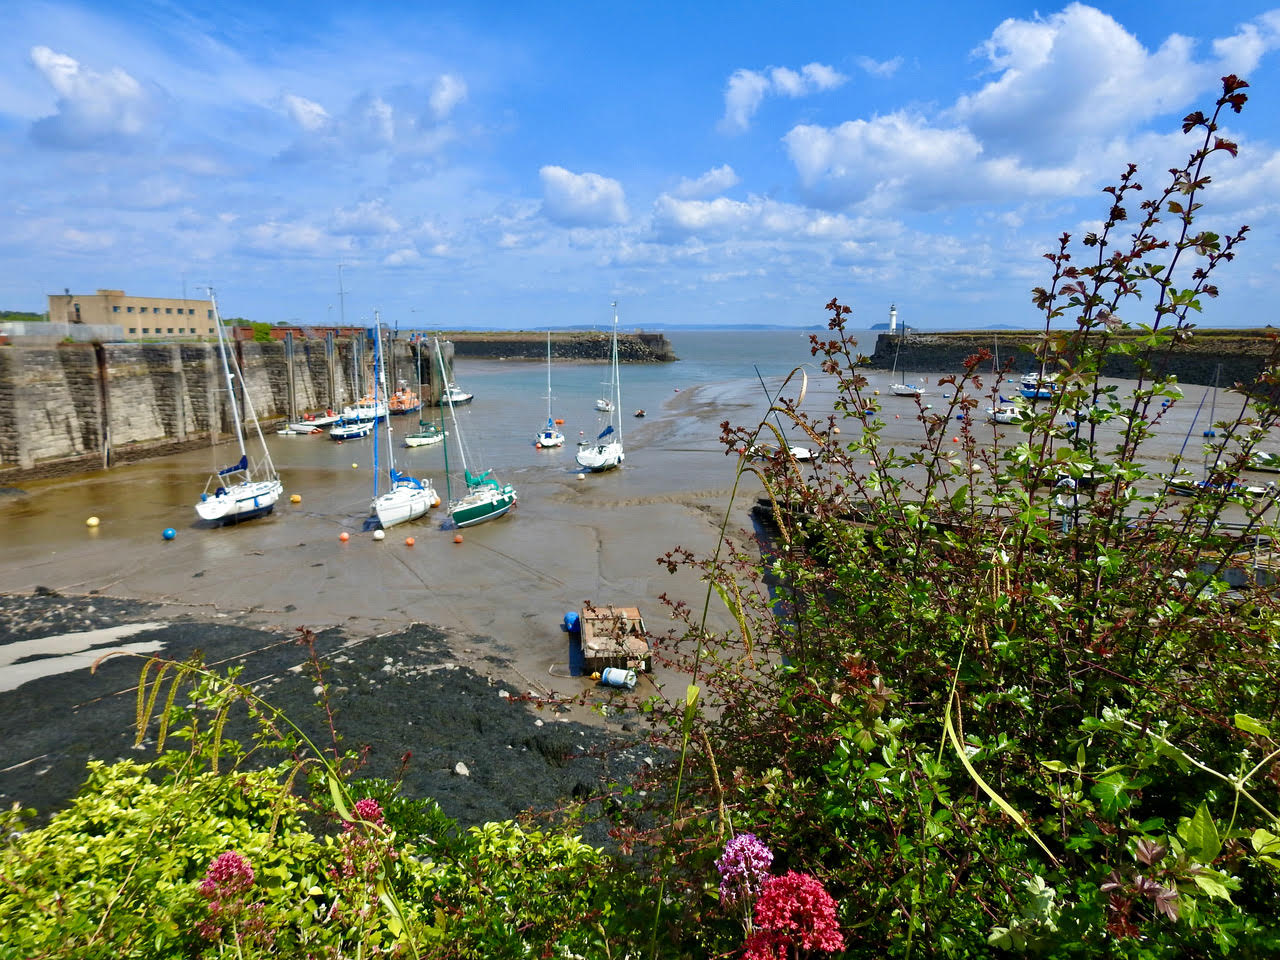 a view of the harbour entrance at Barry Yacht Club